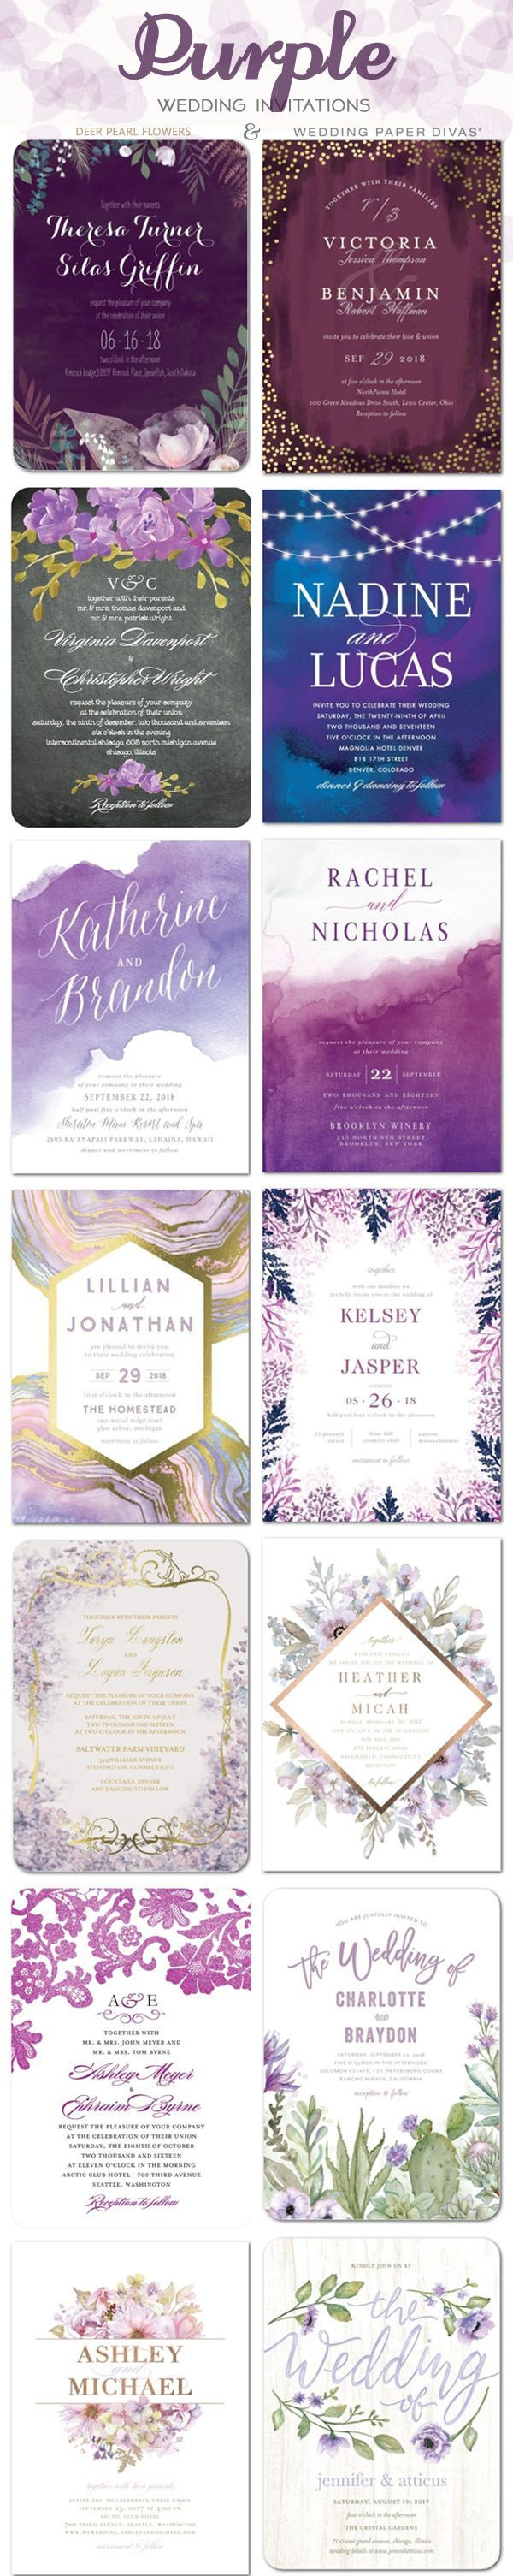 Top 8 Themed Shutterfly Wedding Invitations Purple Wedding Colors